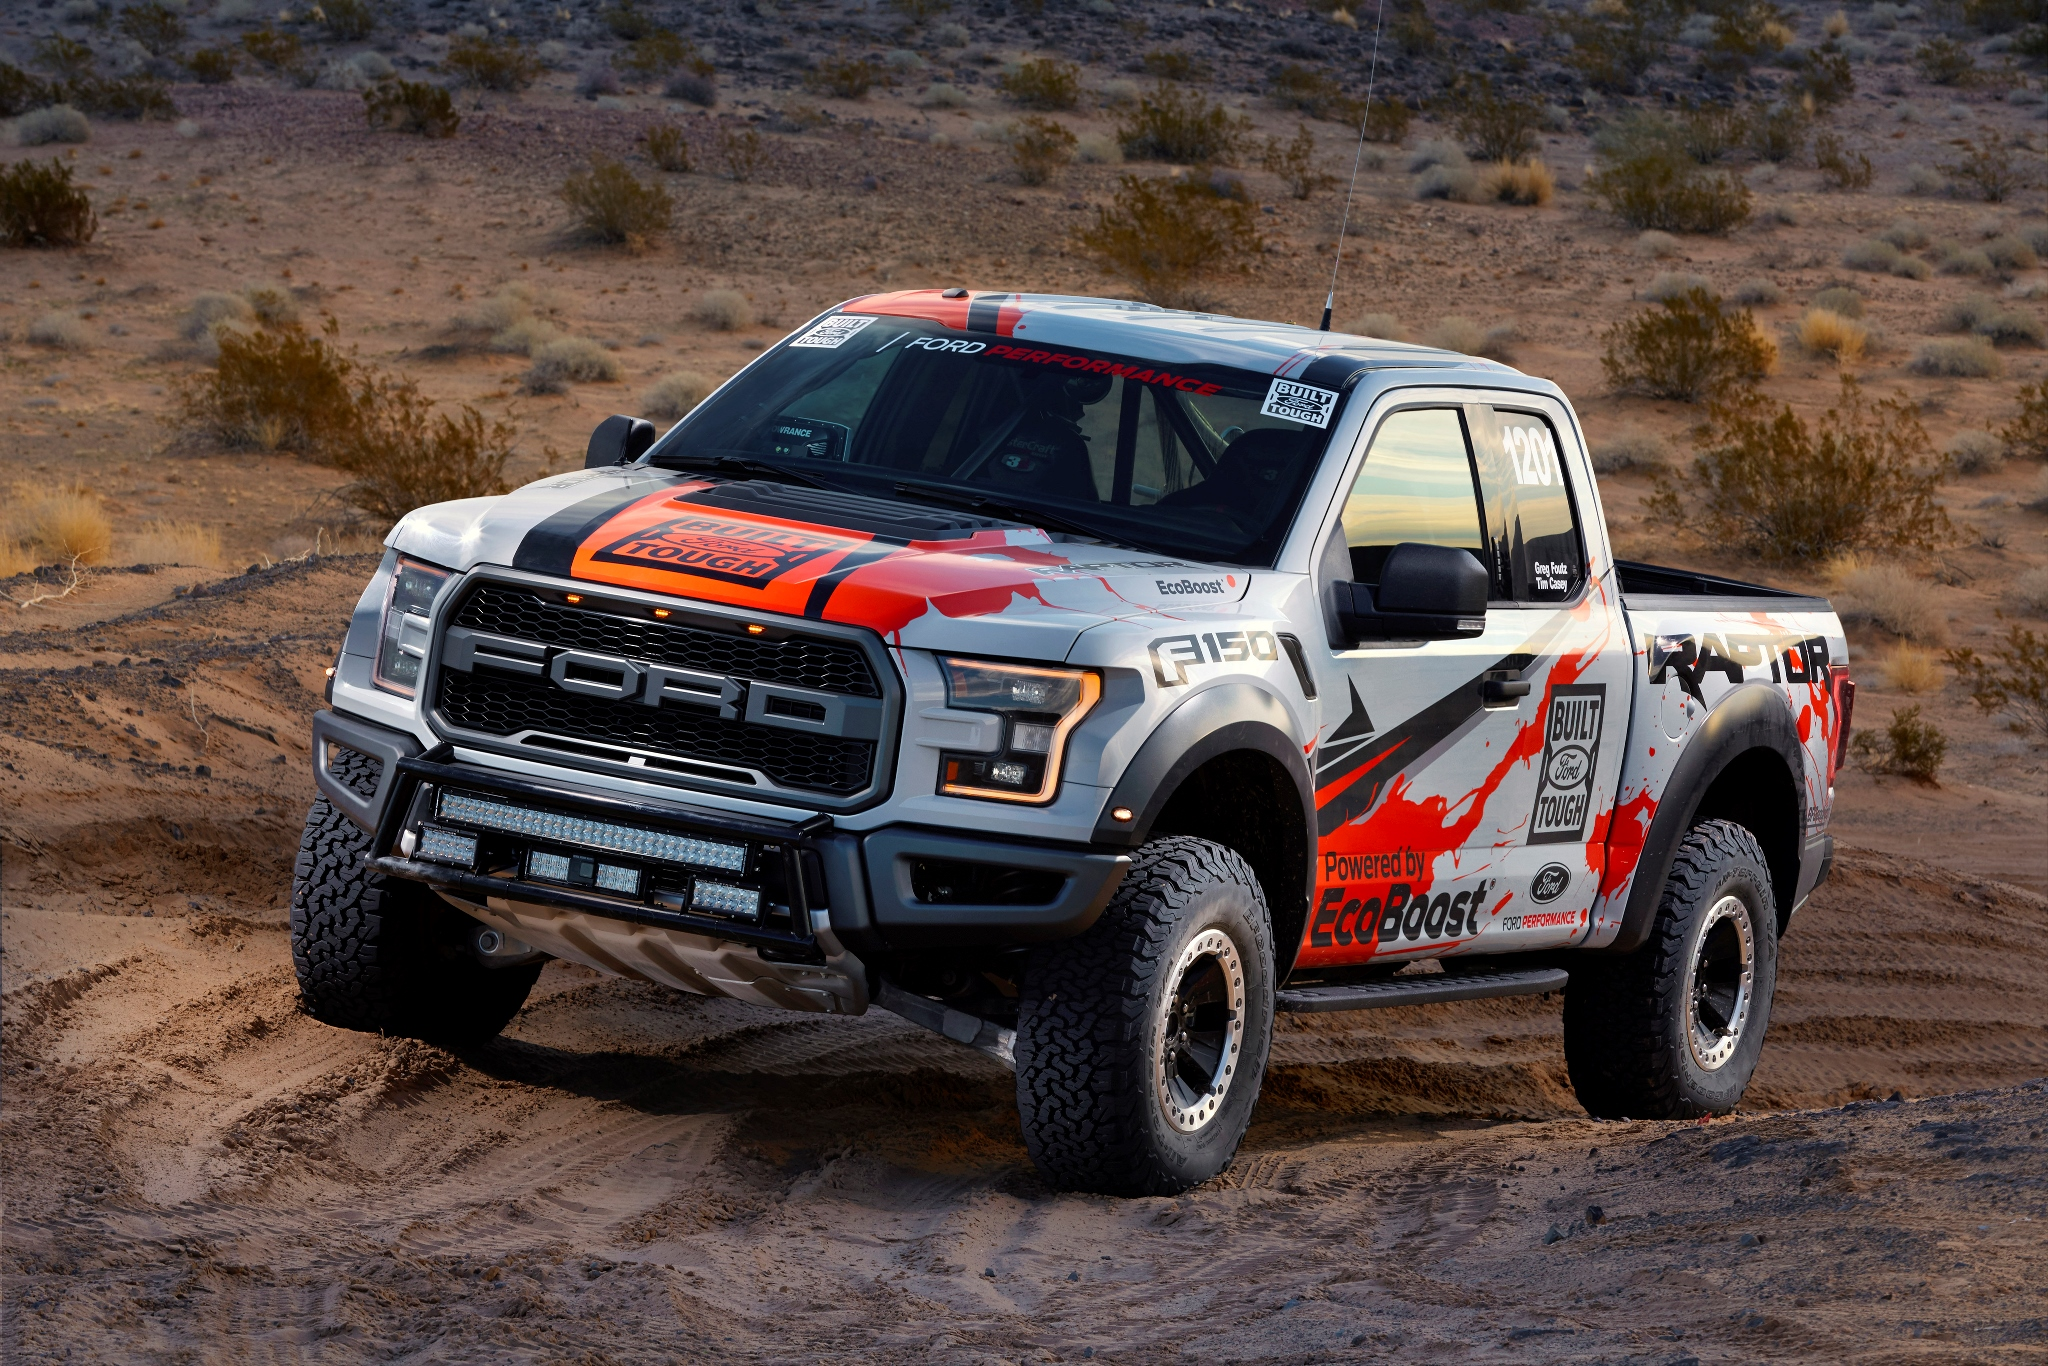 2017 Ford F 150 Raptor Race Truck wallpaper HD desktop 2048x1366